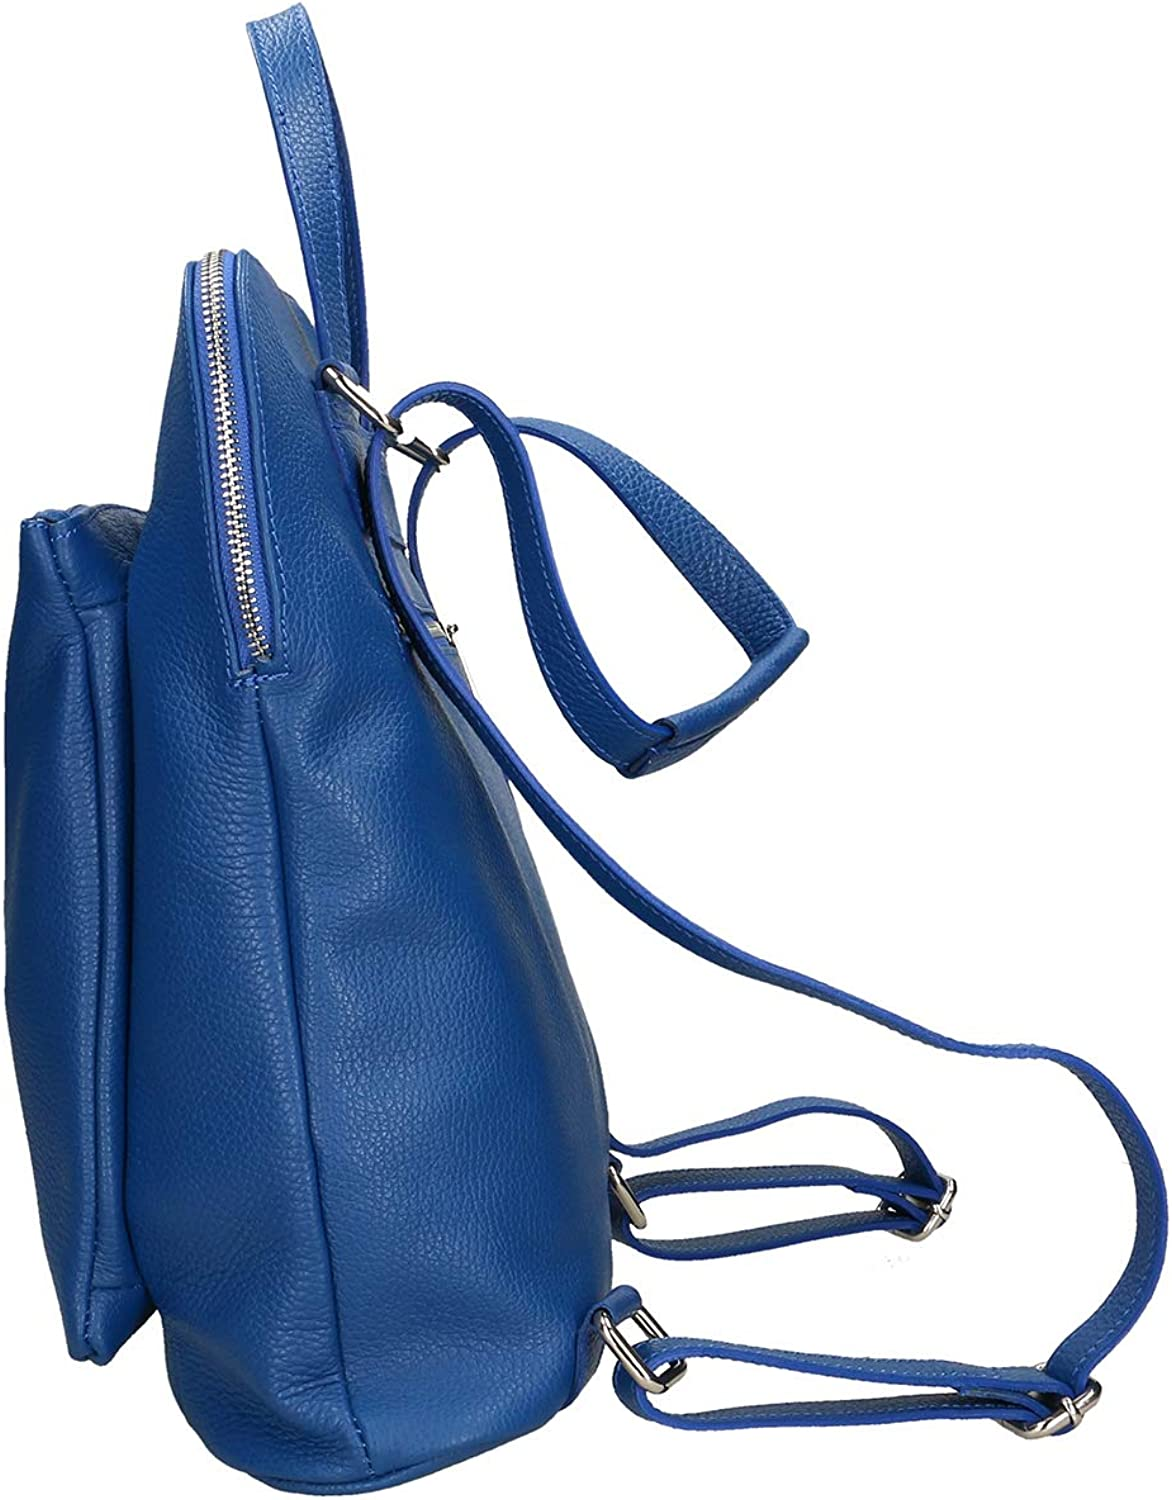 Chicca Borse Zaino in vera pelle made in Italy - 34x28x10 Cm Bluette